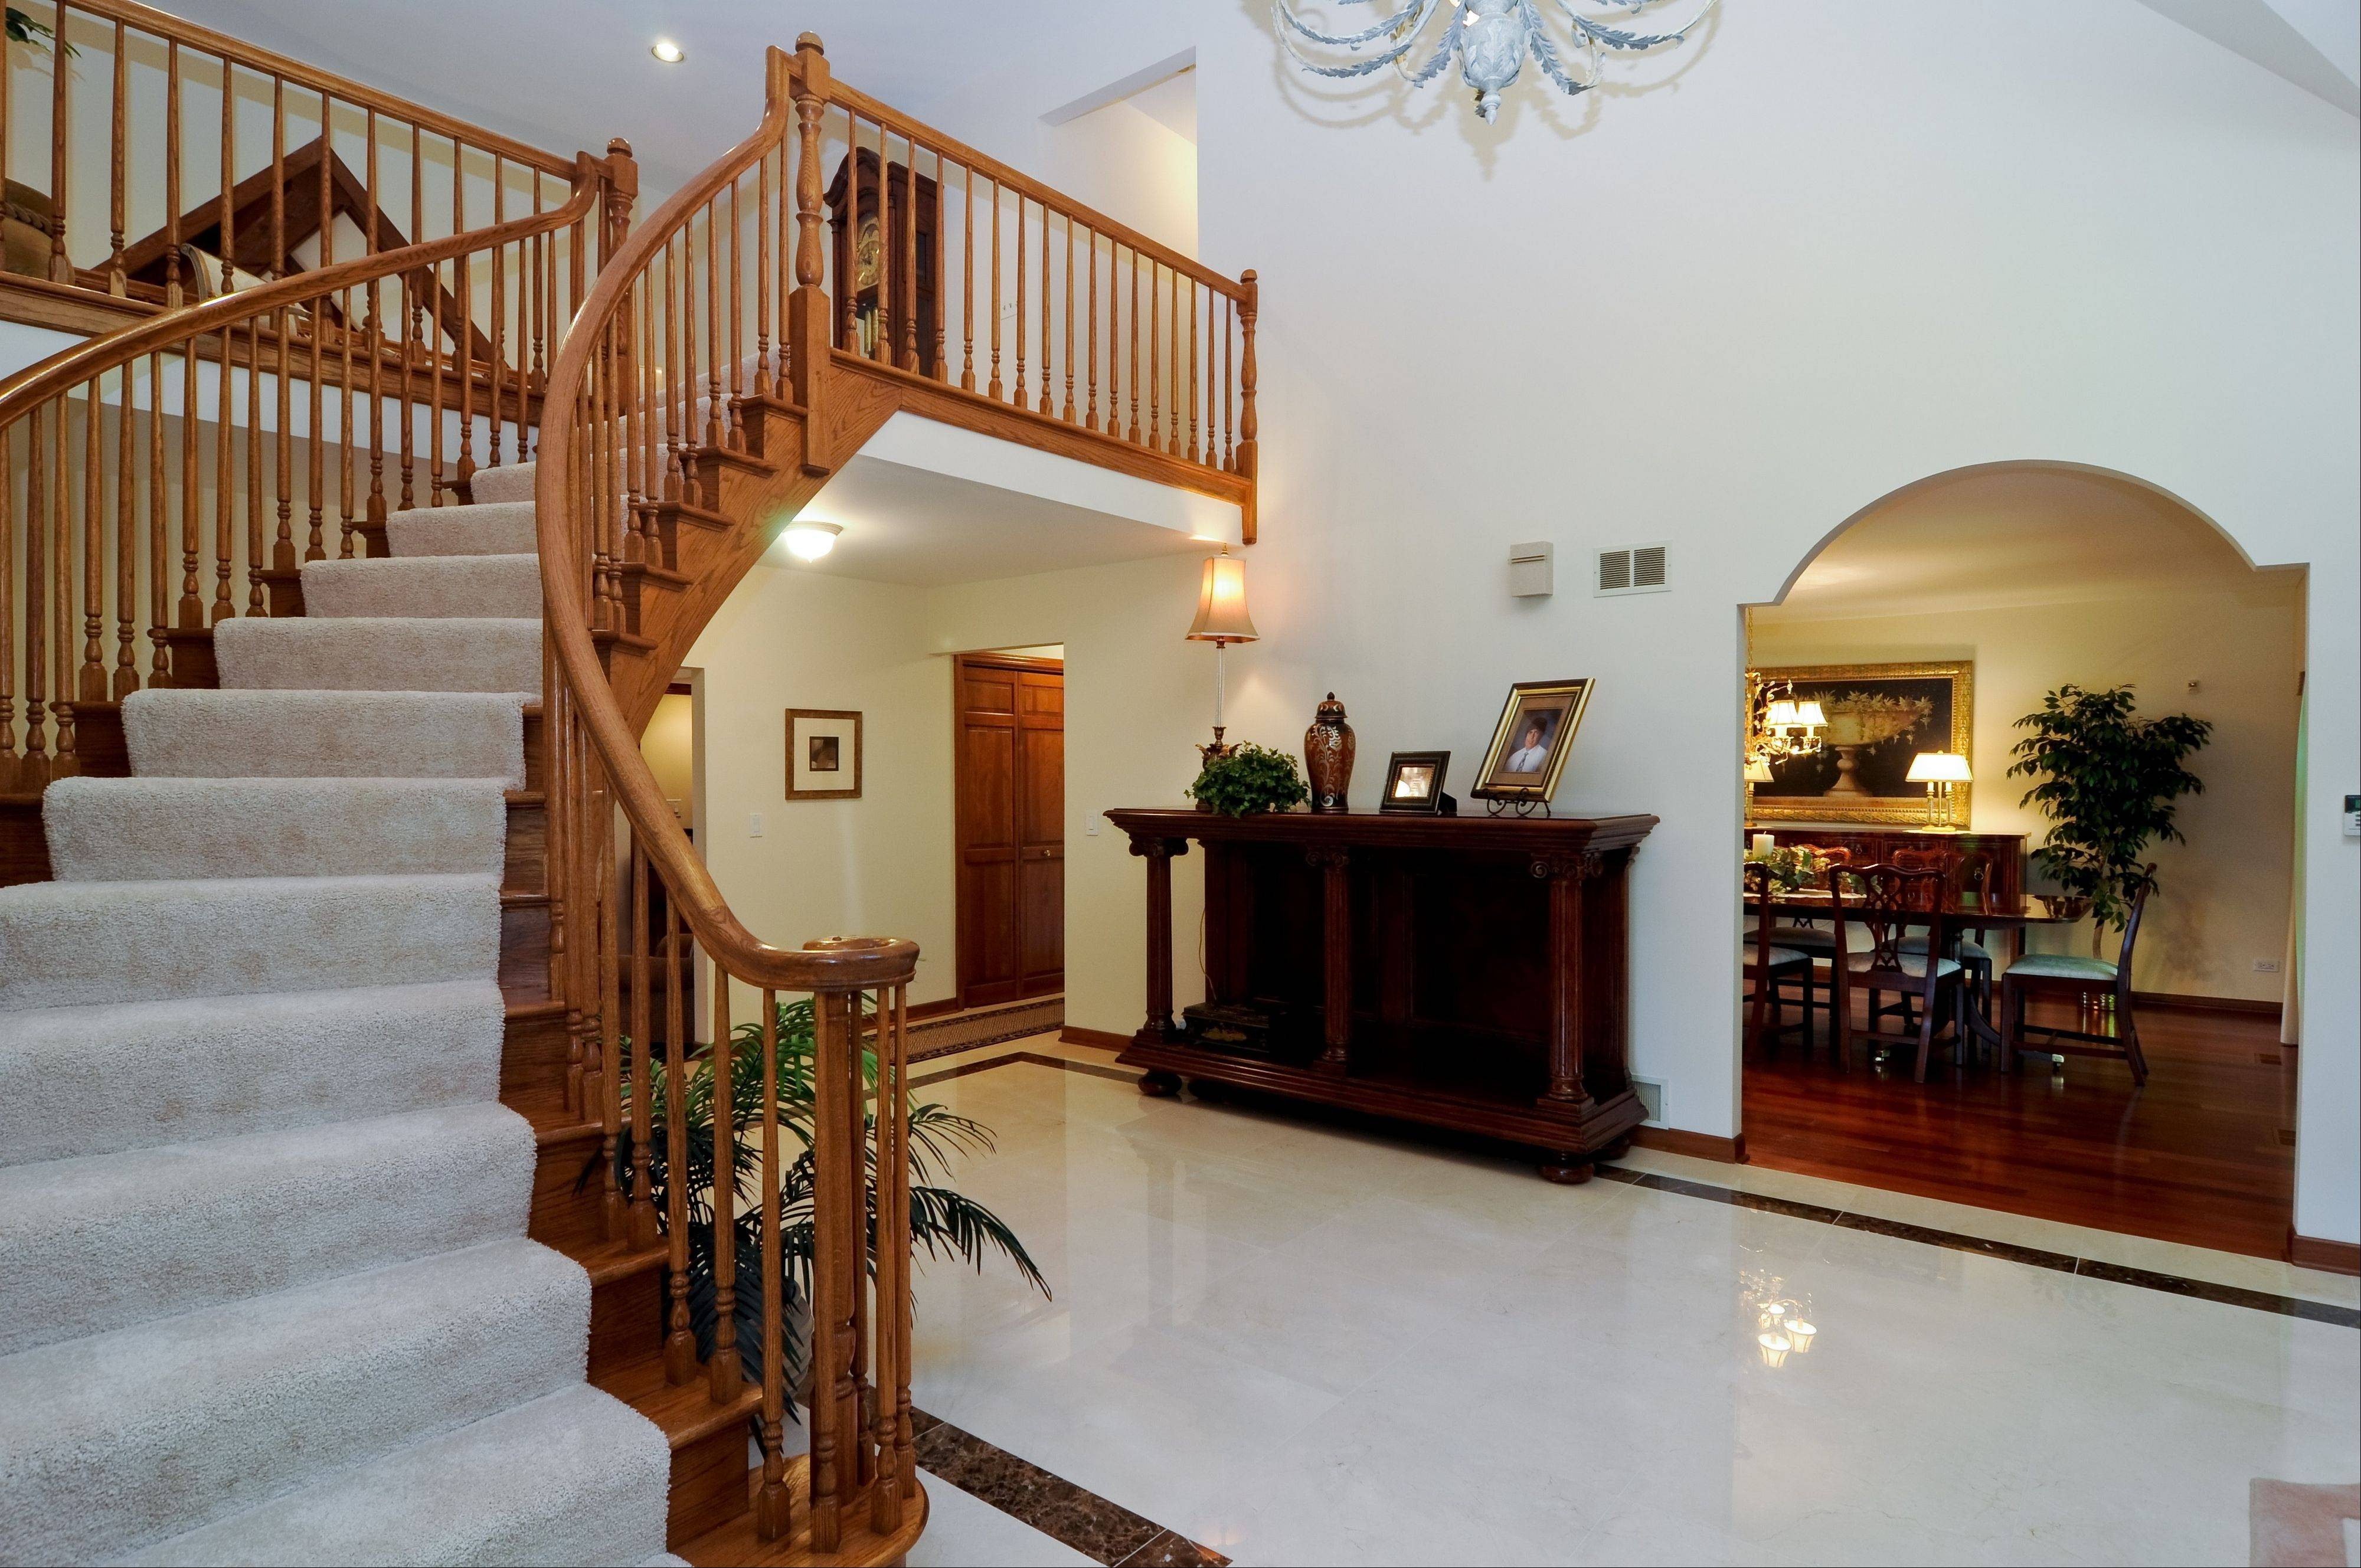 Visitors to this home are greeted by a grand, two-story marble foyer.